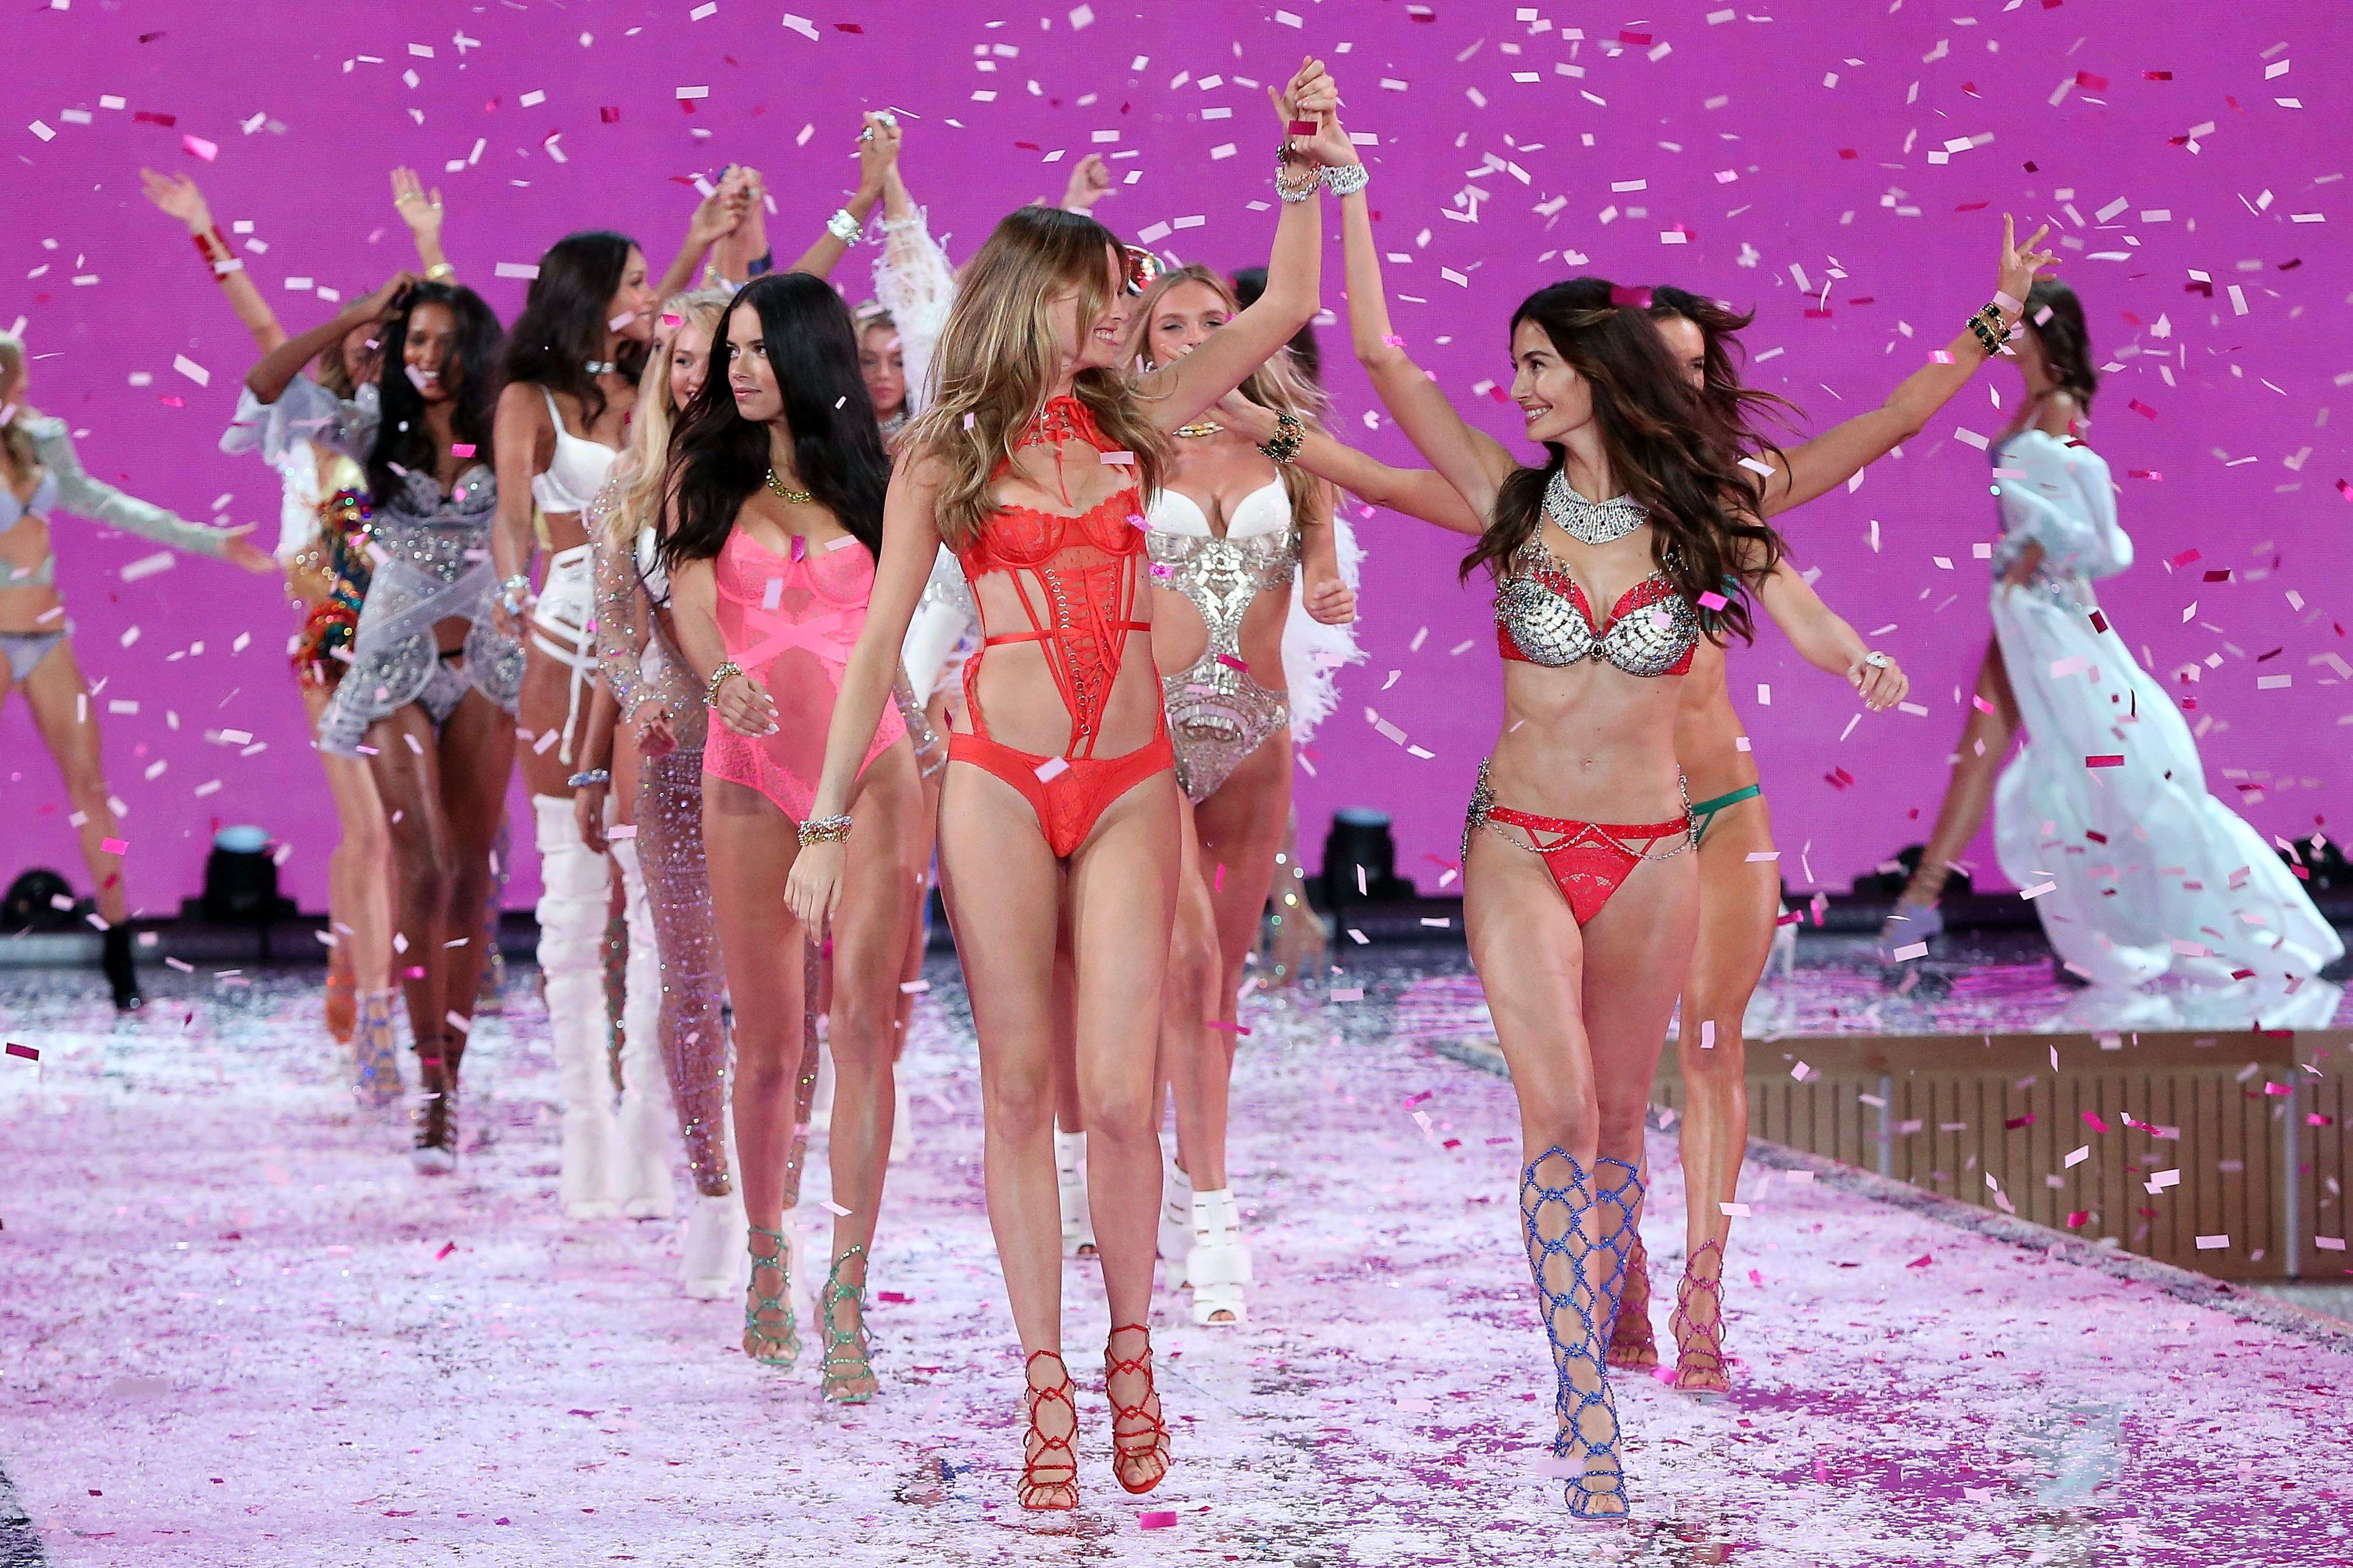 The Victoria's Secret Angels Tell What It Was Like to Buy Their First - We asked some of the Victoria's Secret Angels—Sara Sampaio, Adriana Lima, Taylor Hill—if they remembered buying their first bra.